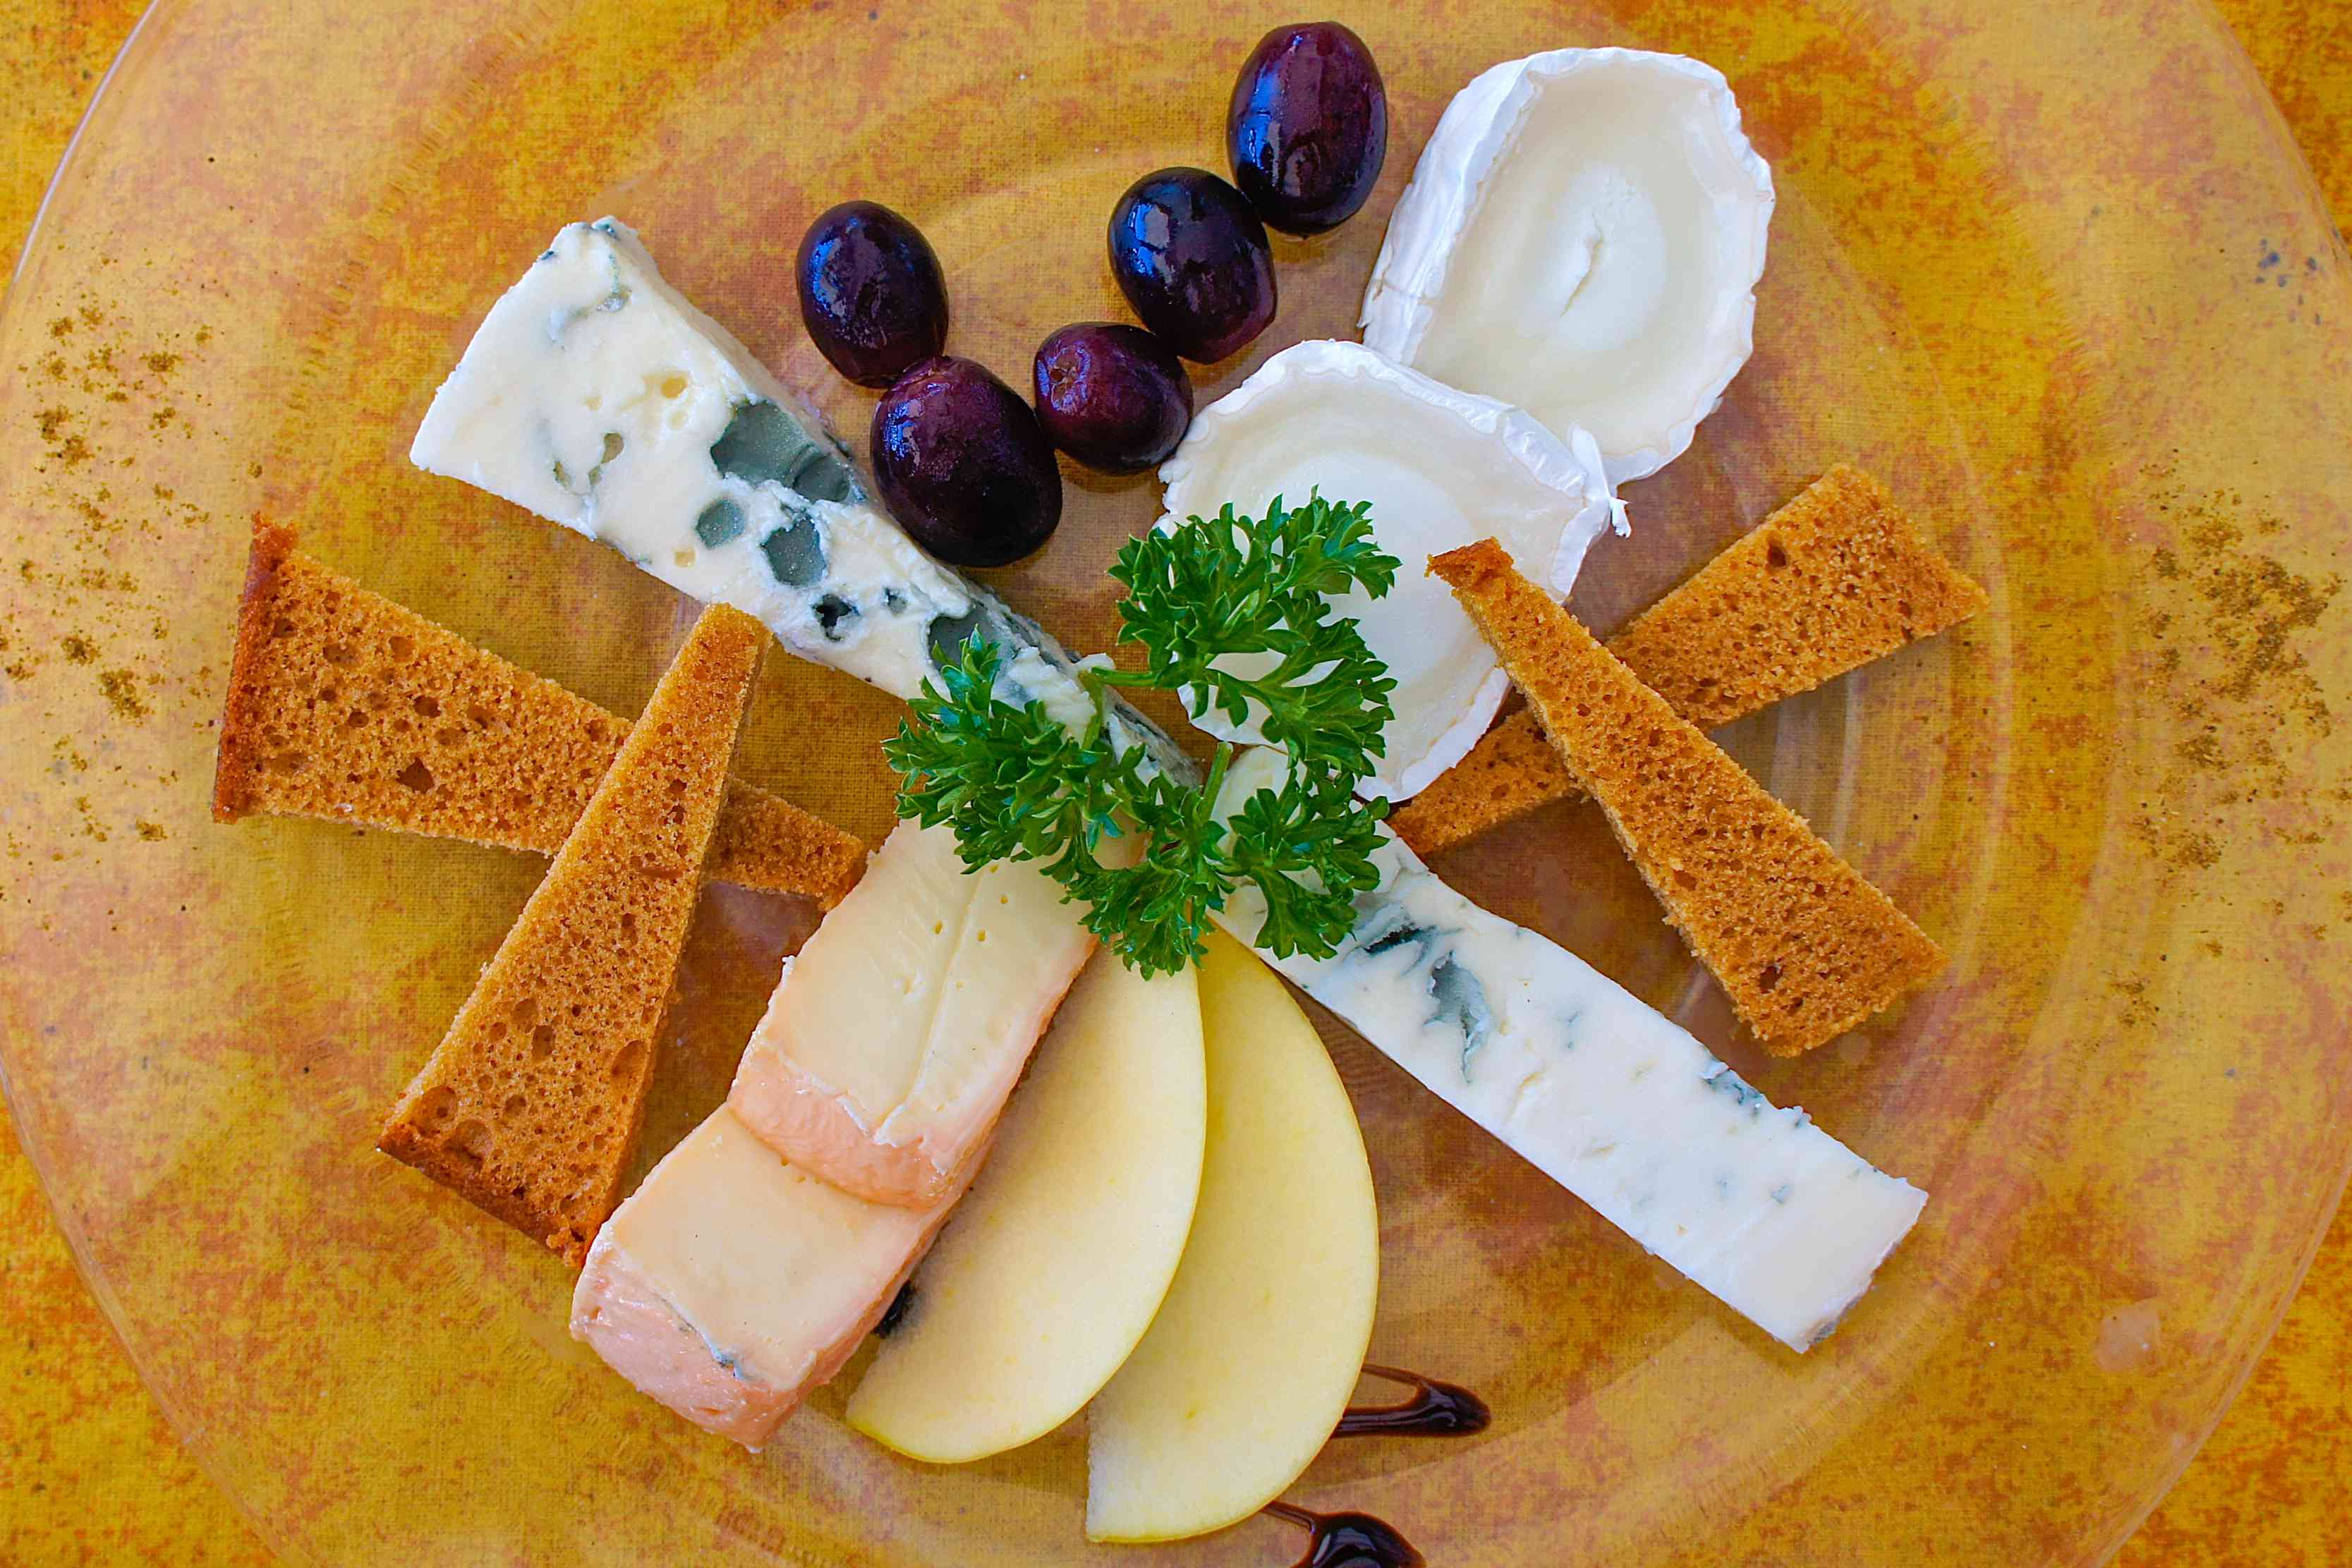 Cheese plate from Grand Case restaurant